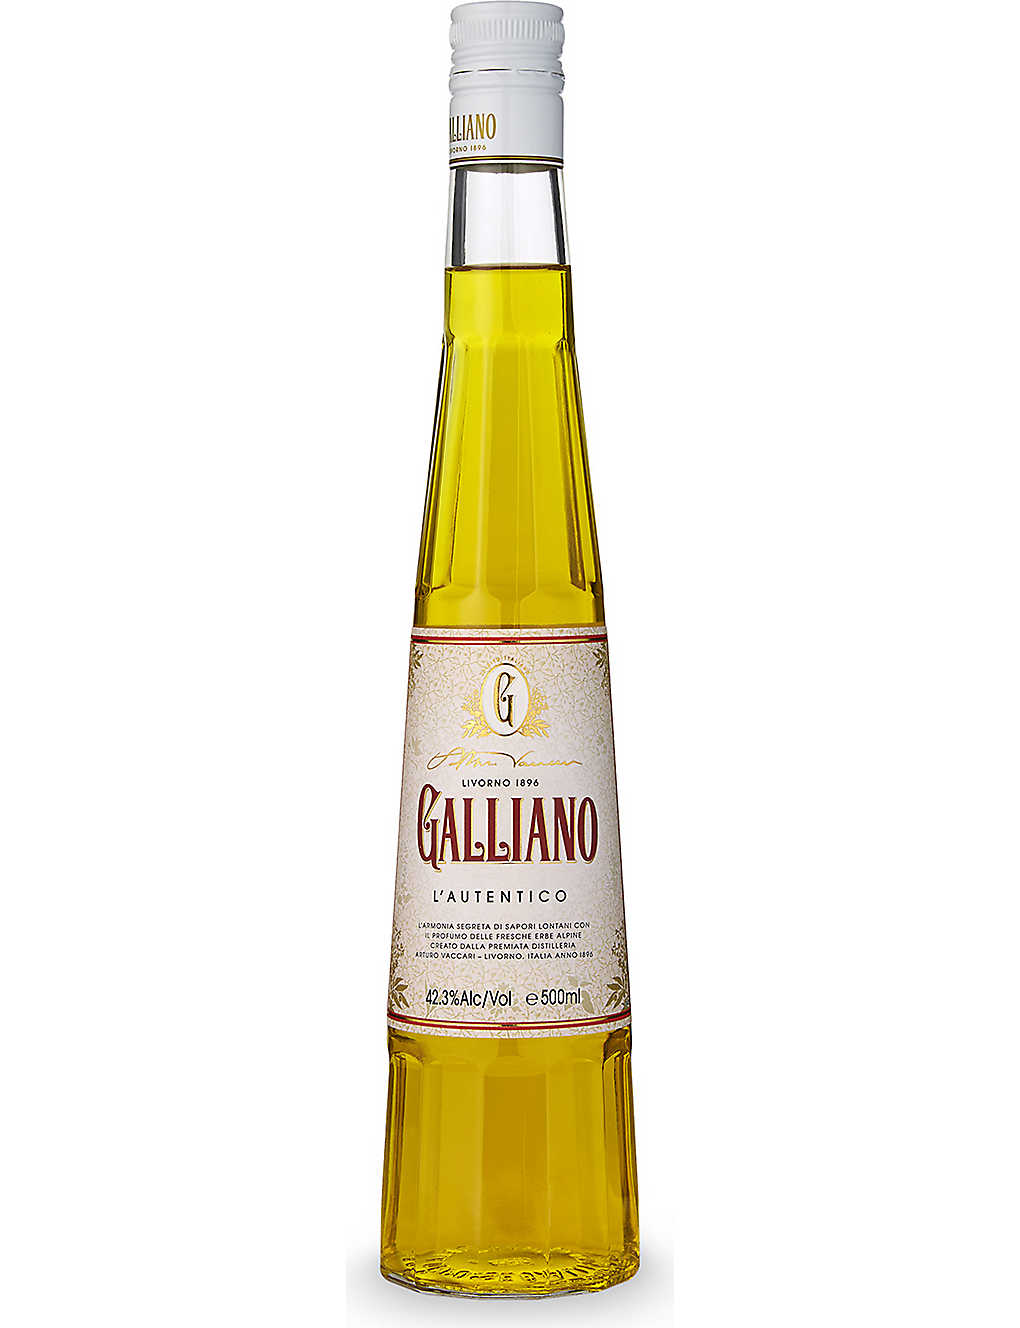 LIQUER: Galliano 500ml